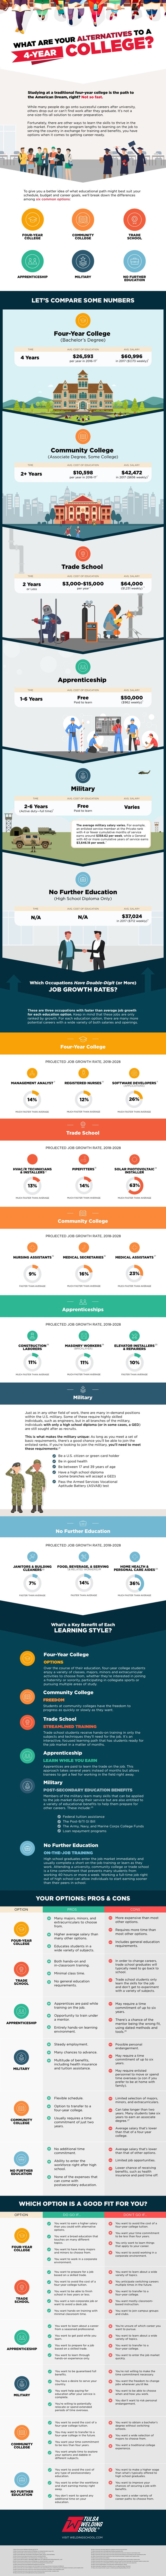 alternatives to college guide